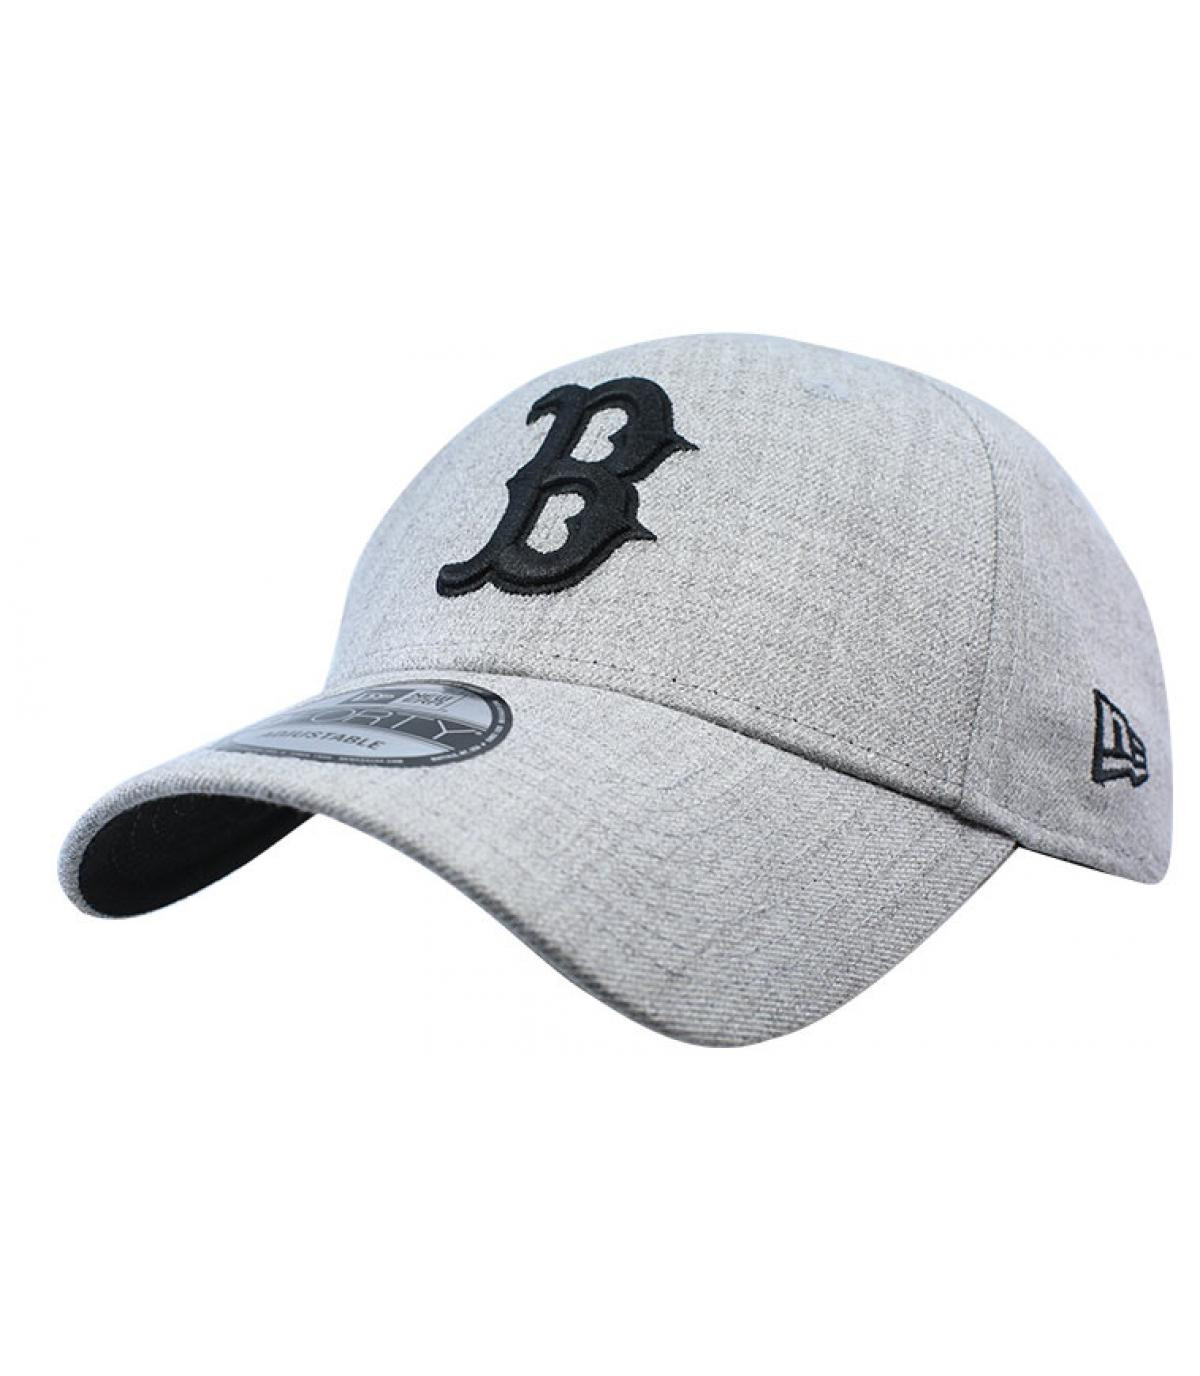 Details Heather Ess Boston 9Forty gray black - afbeeling 2